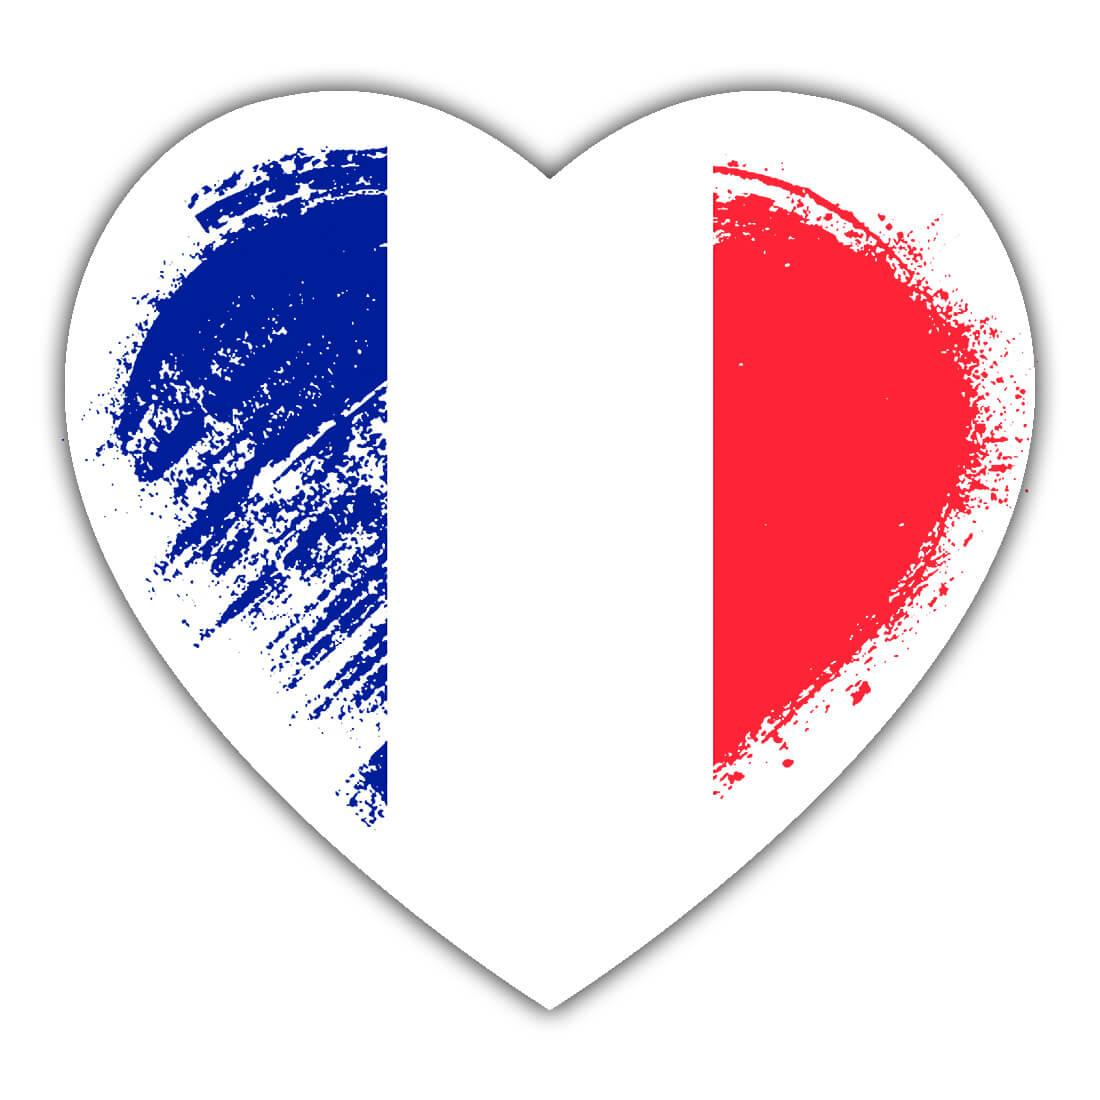 French Heart : Gift Sticker France Country Expat Flag Patriotic Flags National